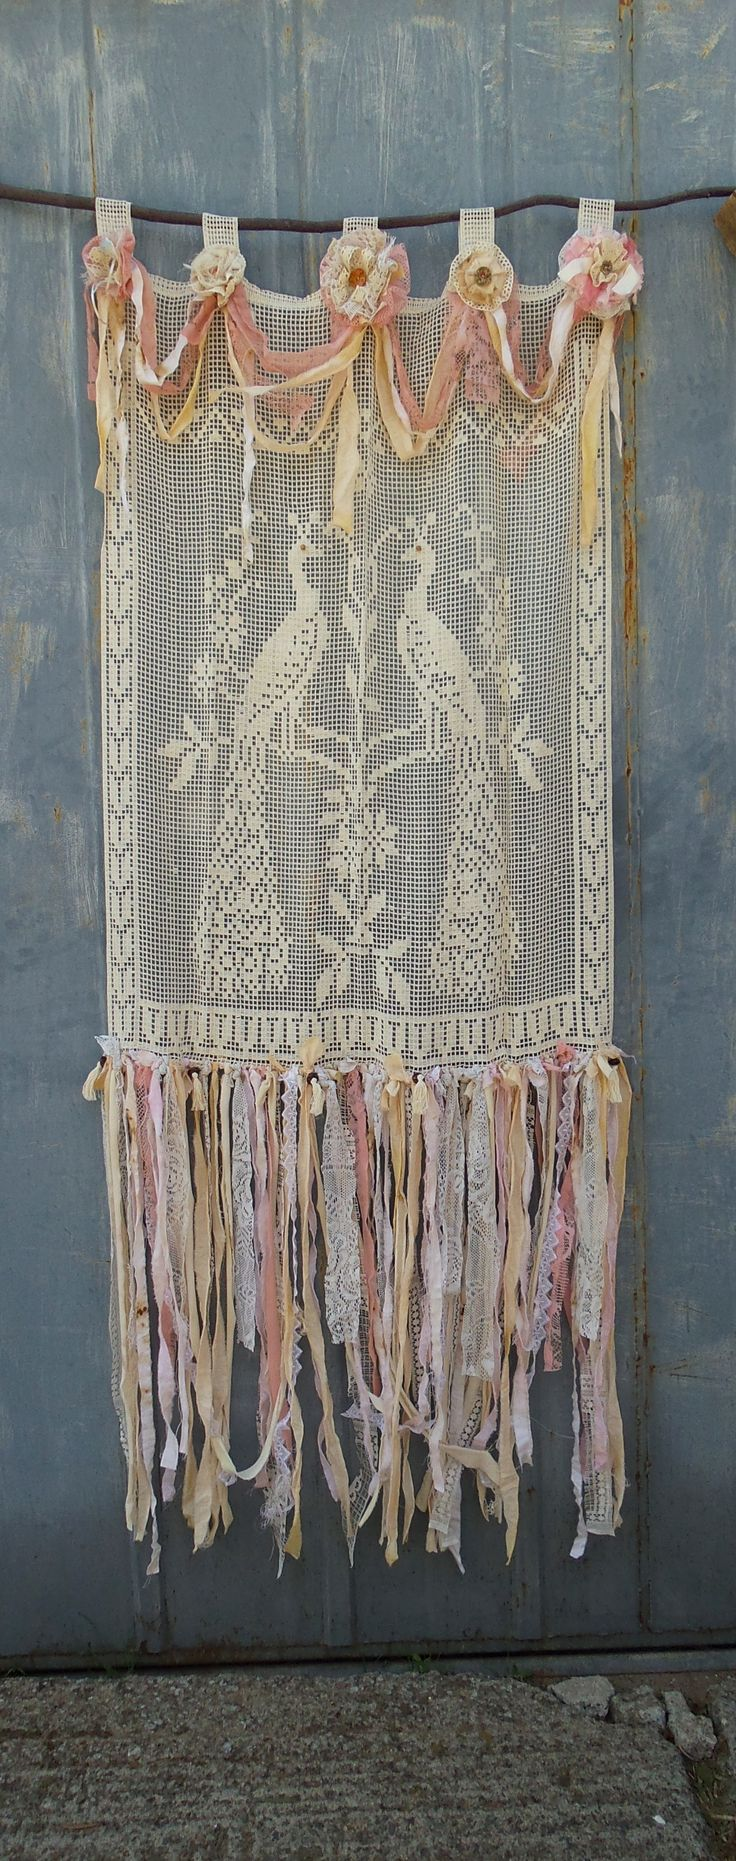 Gypsy shabby chic curtains - Shabby Chic Curtain Panels Ready To Ship French Cottage Chic Tab Top Curtain Wedding Backdrop Room Divider Beach Wedding Boho Chic Gypsy